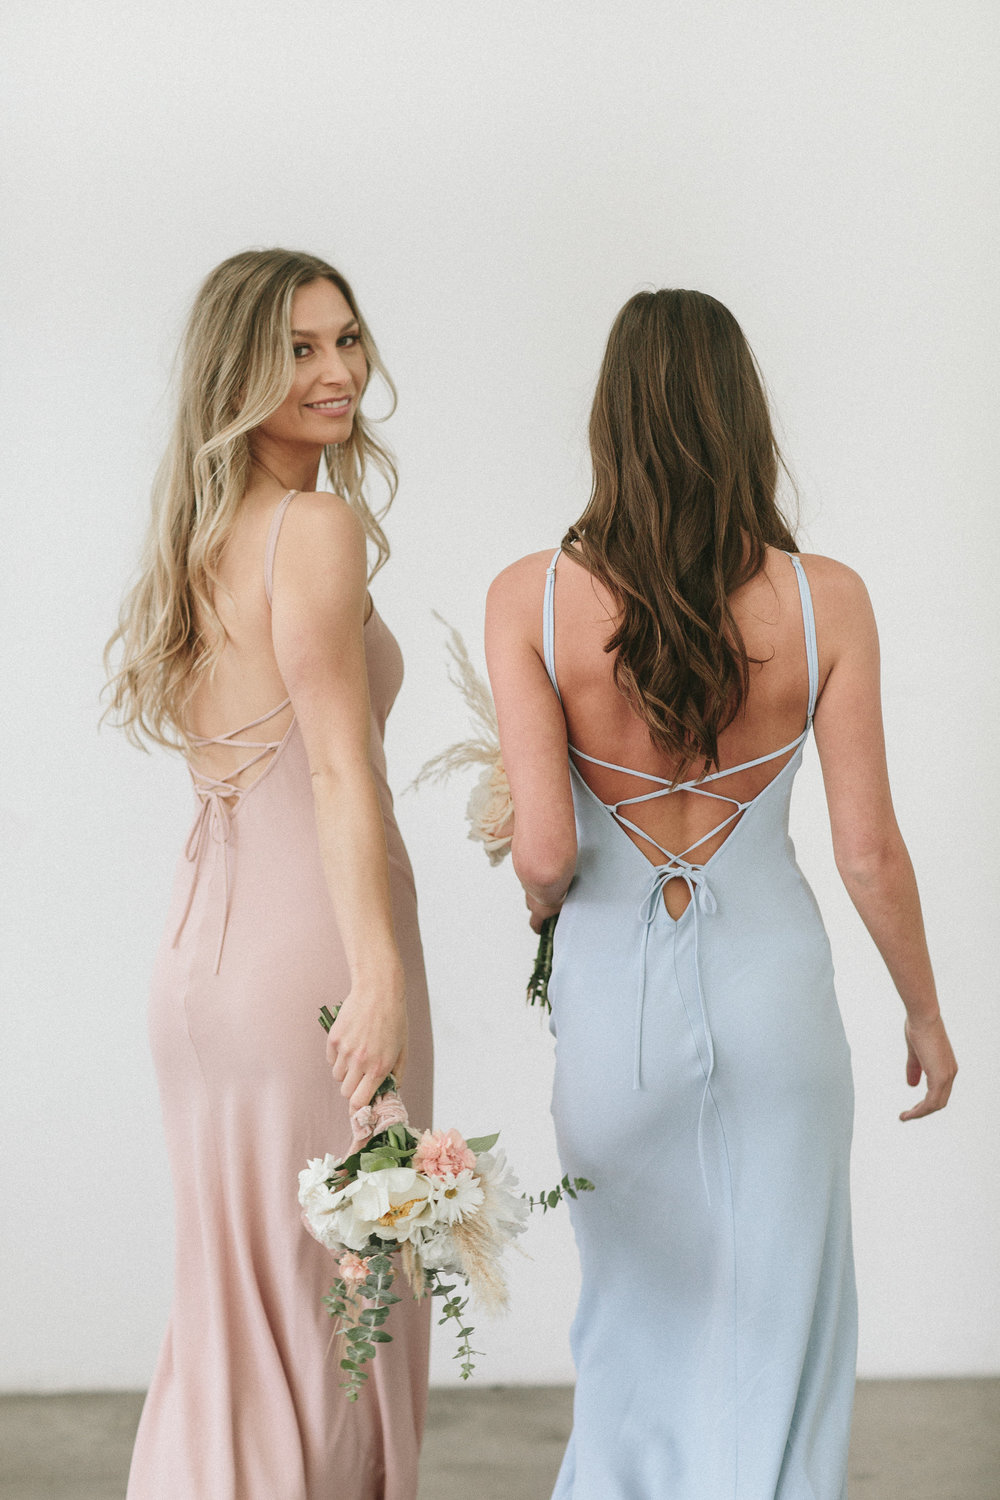 Introducing Flynn Skye Bridal - We partnered with Topshop to create the wedding collection of your dreams